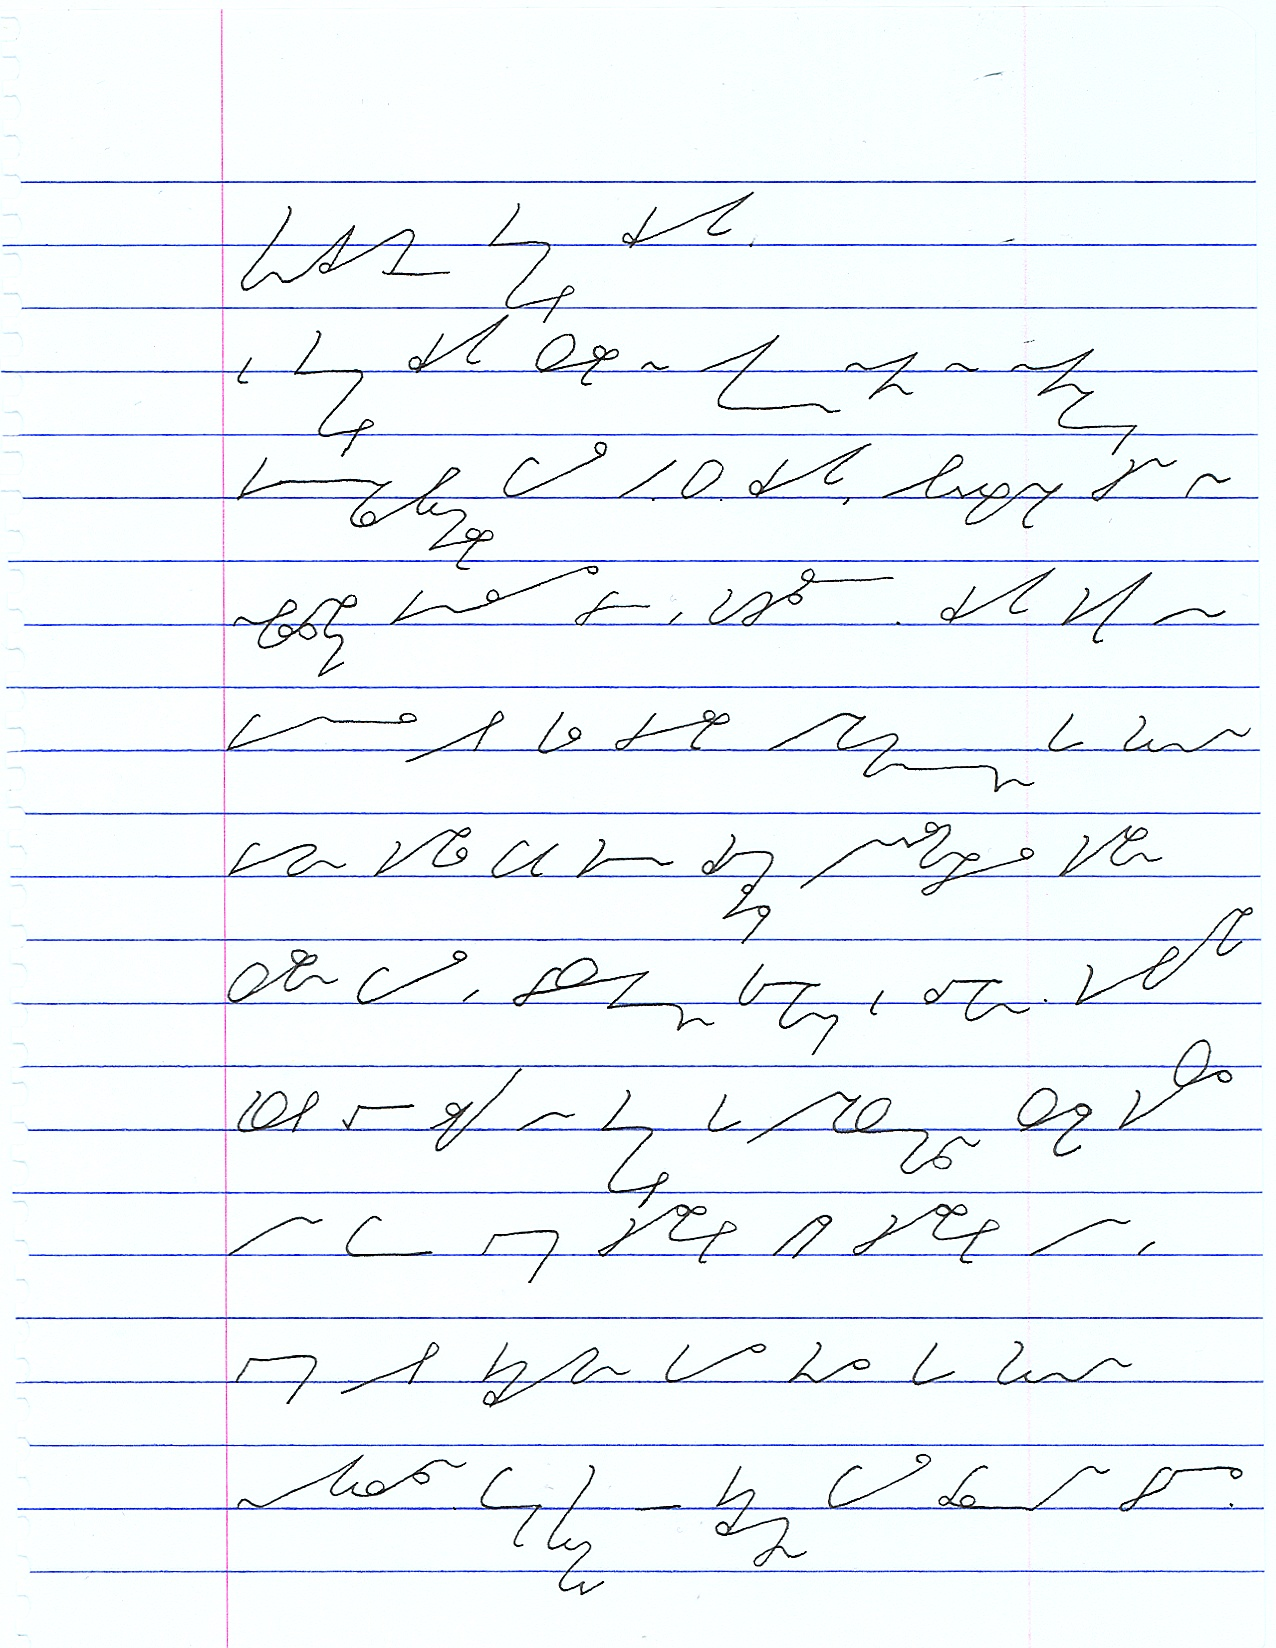 essay of shorthand With just a little stretching you could probably turn this article into something you'd find in the onion we've had articles in the past about teachers getting annoyed with students using texting shorthand in their papers, but now a teacher was flabbergasted to receive an entire.